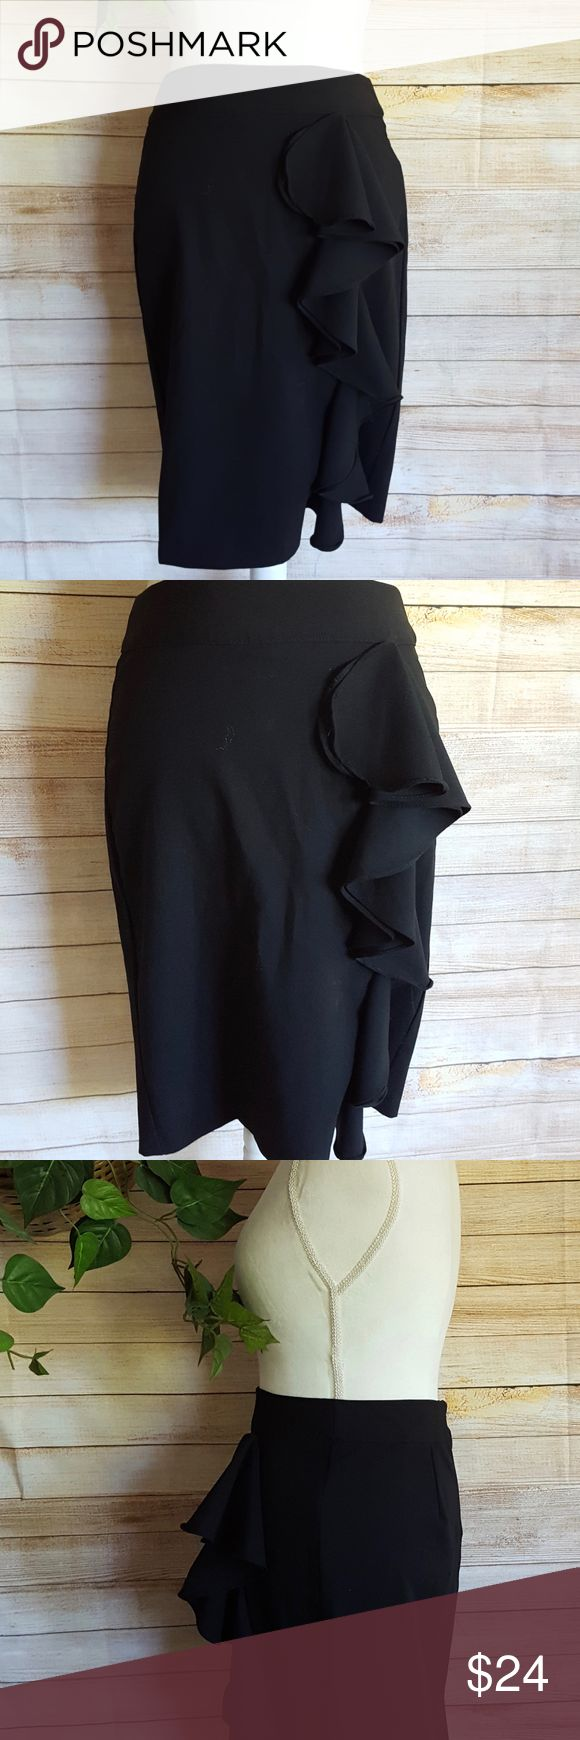 "Charlotte Russe Black Pencil Skirt w/ Ruffle Sz M Charlotte Russe Womens Black Pencil Skirt  Ruffle in the front. Stretchy.  7.5"" slit in back. Not lined.  Back zip closure. Size M.  71% polyester. 26% rayon. 3% spandex. Perfect for the office or to dress up for an evening on the town. Gently used condition with no flaws. Please see photos for details.  All measurements are taken laid flat, unstretched. Waist:  15 inches.. Length:  22.5 inches. Charlotte Russe Skirts"